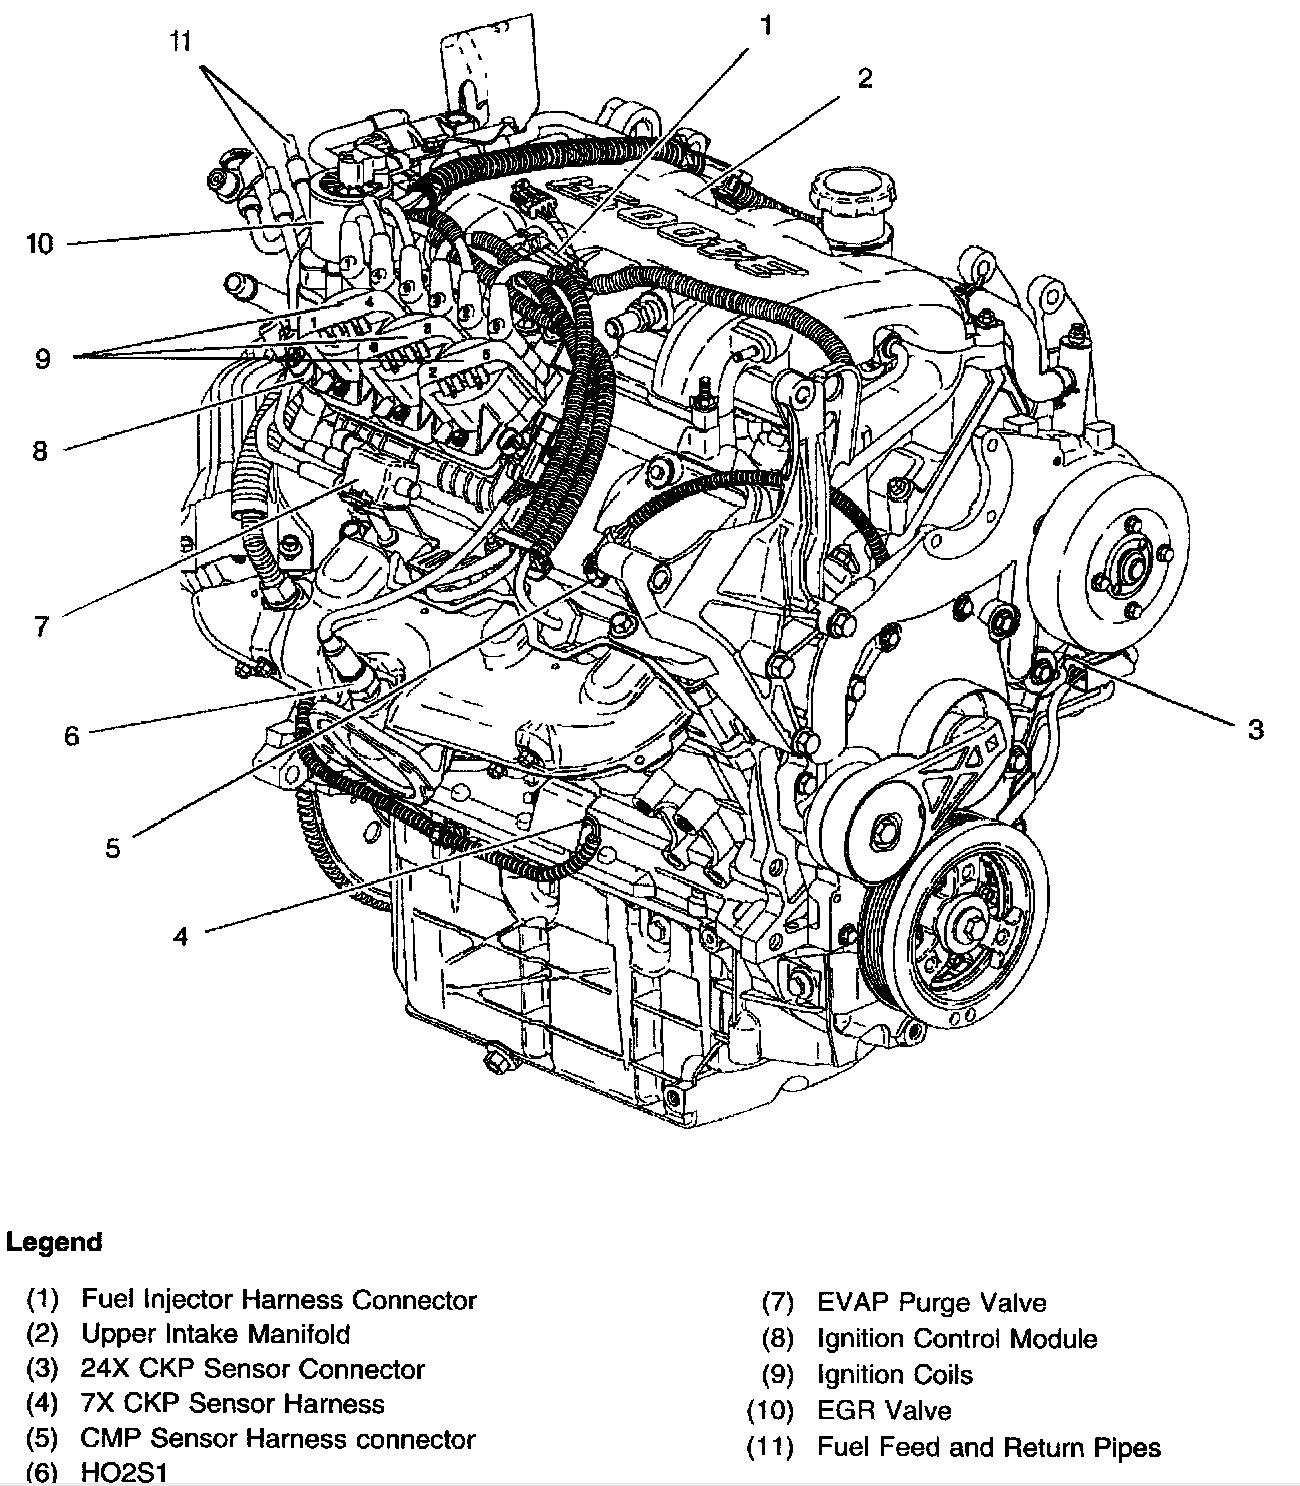 mazda 3 0 v6 engine diagram head casket toyota 4 0 engine diagram wiring diagram e6  toyota 4 0 engine diagram wiring